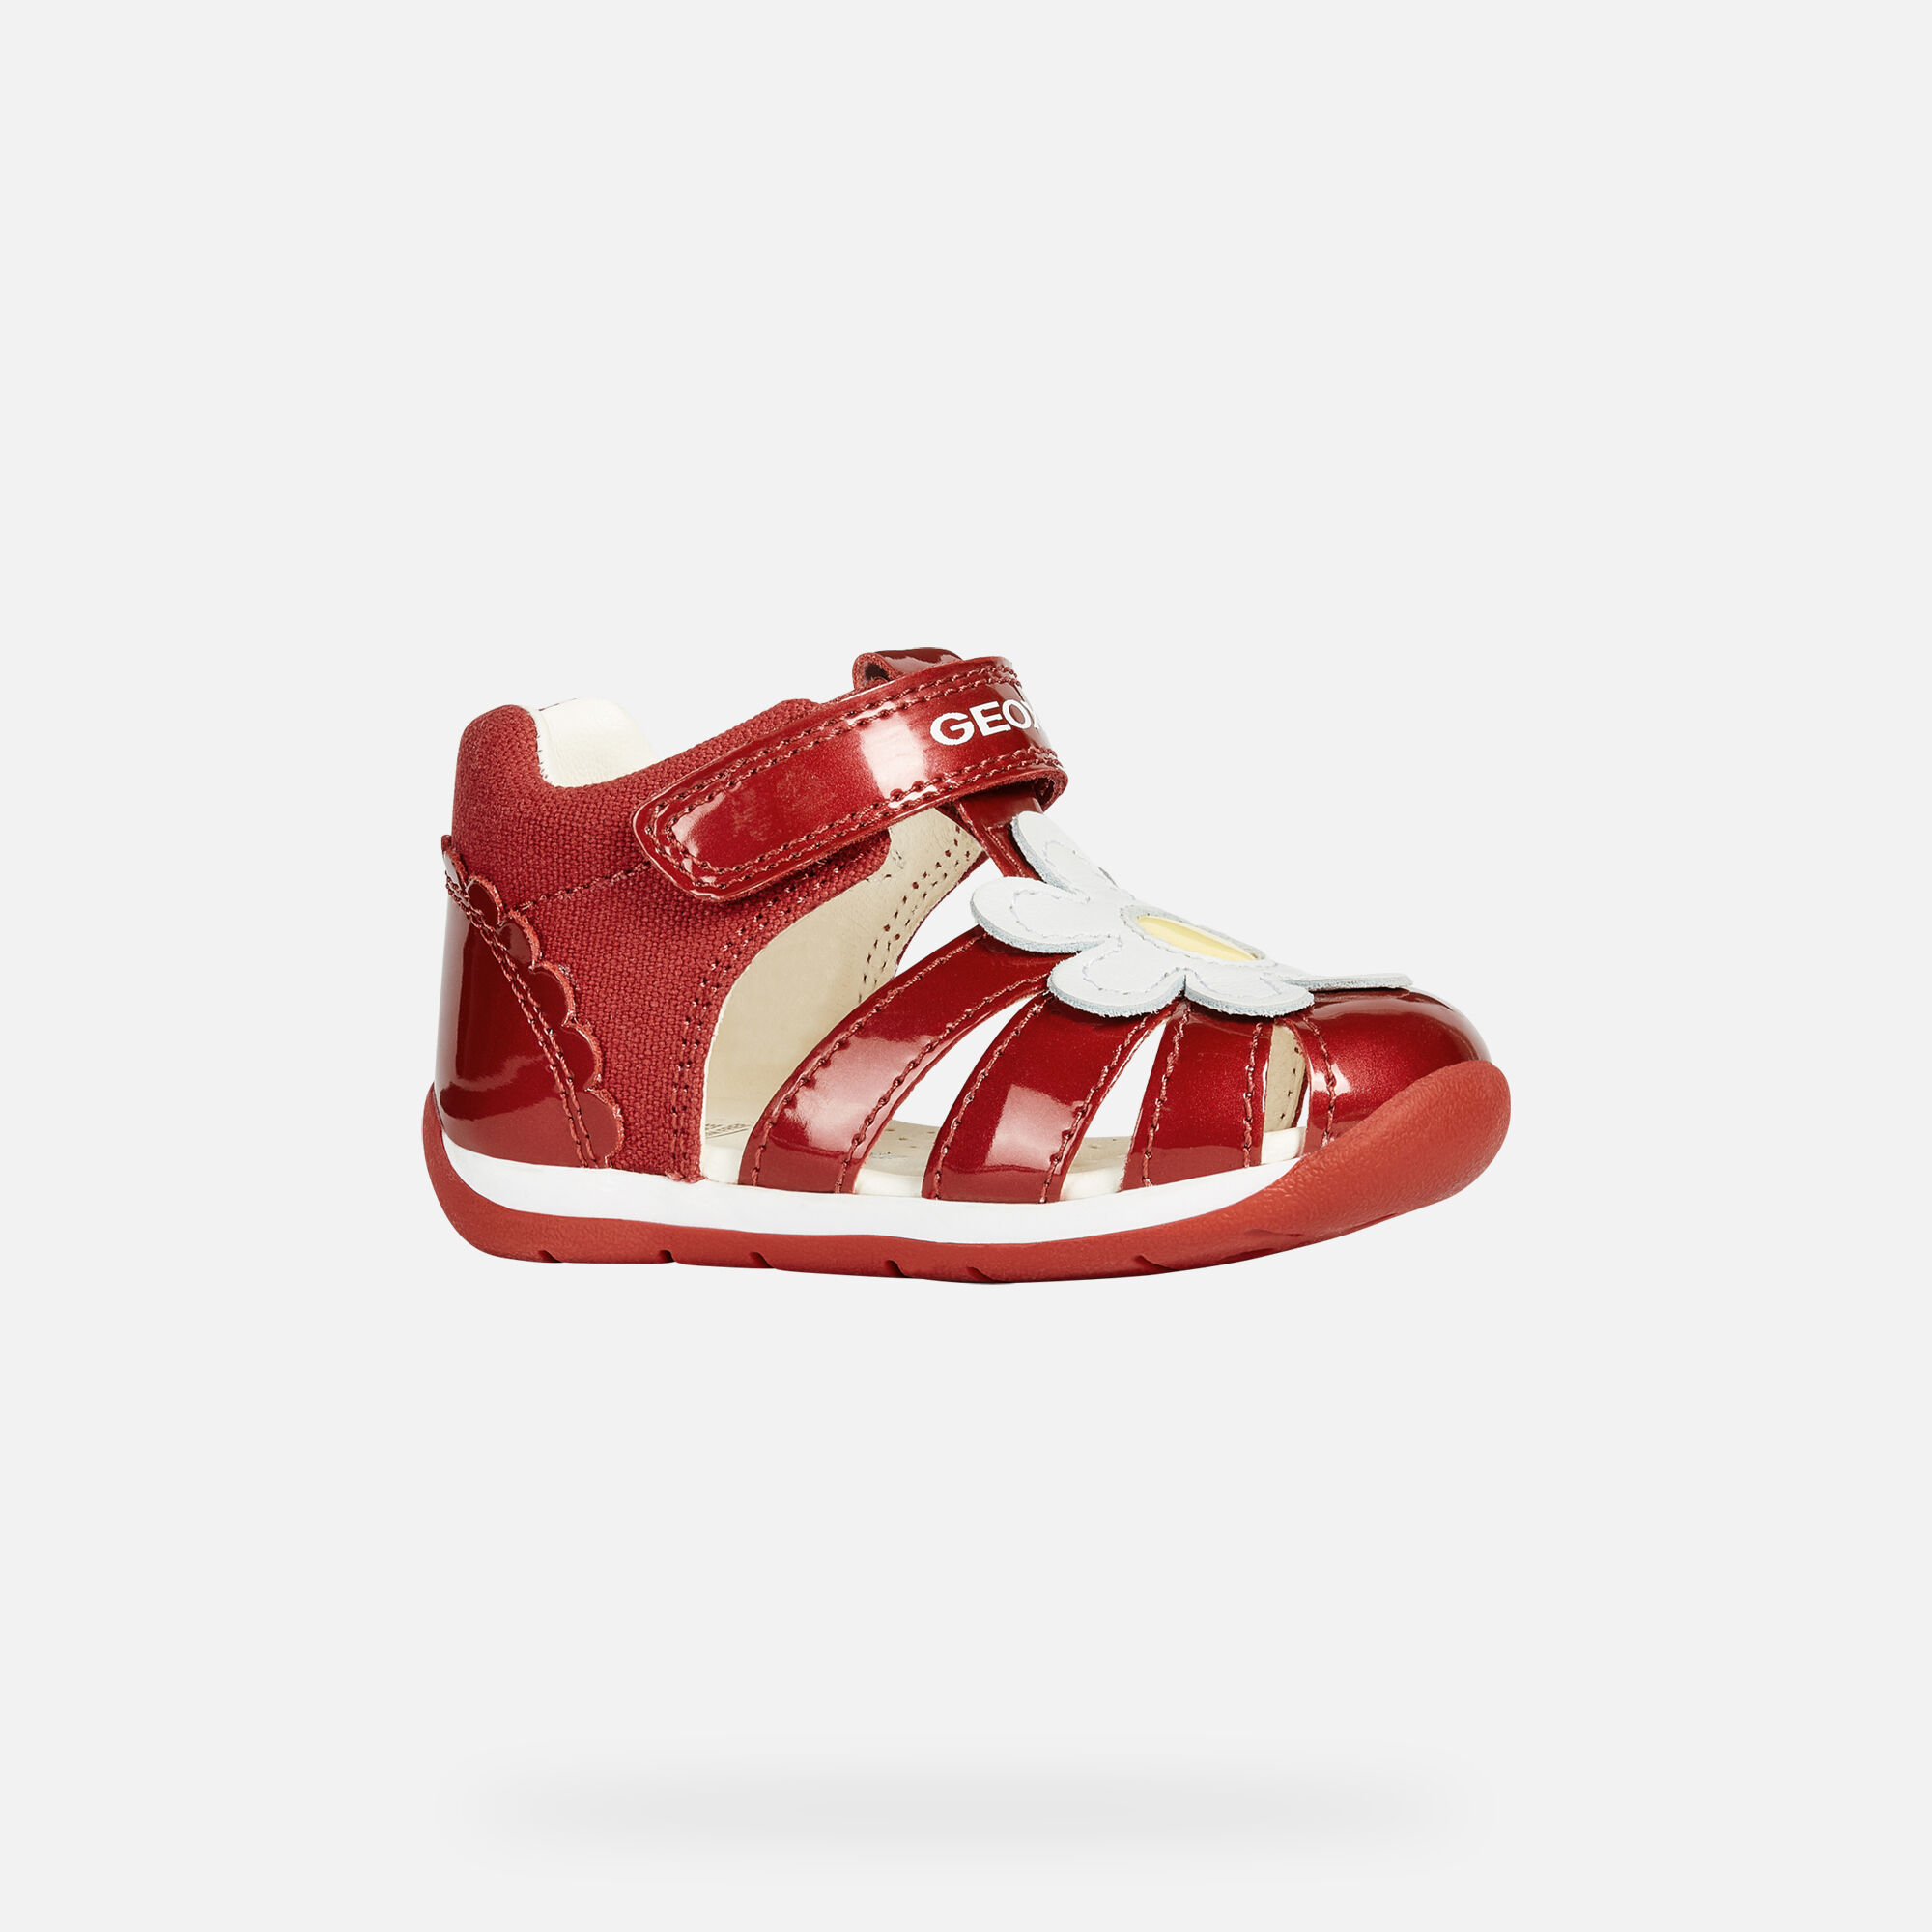 Geox B EACH GIRL: Red and White Baby First Steps Shoes | Geox